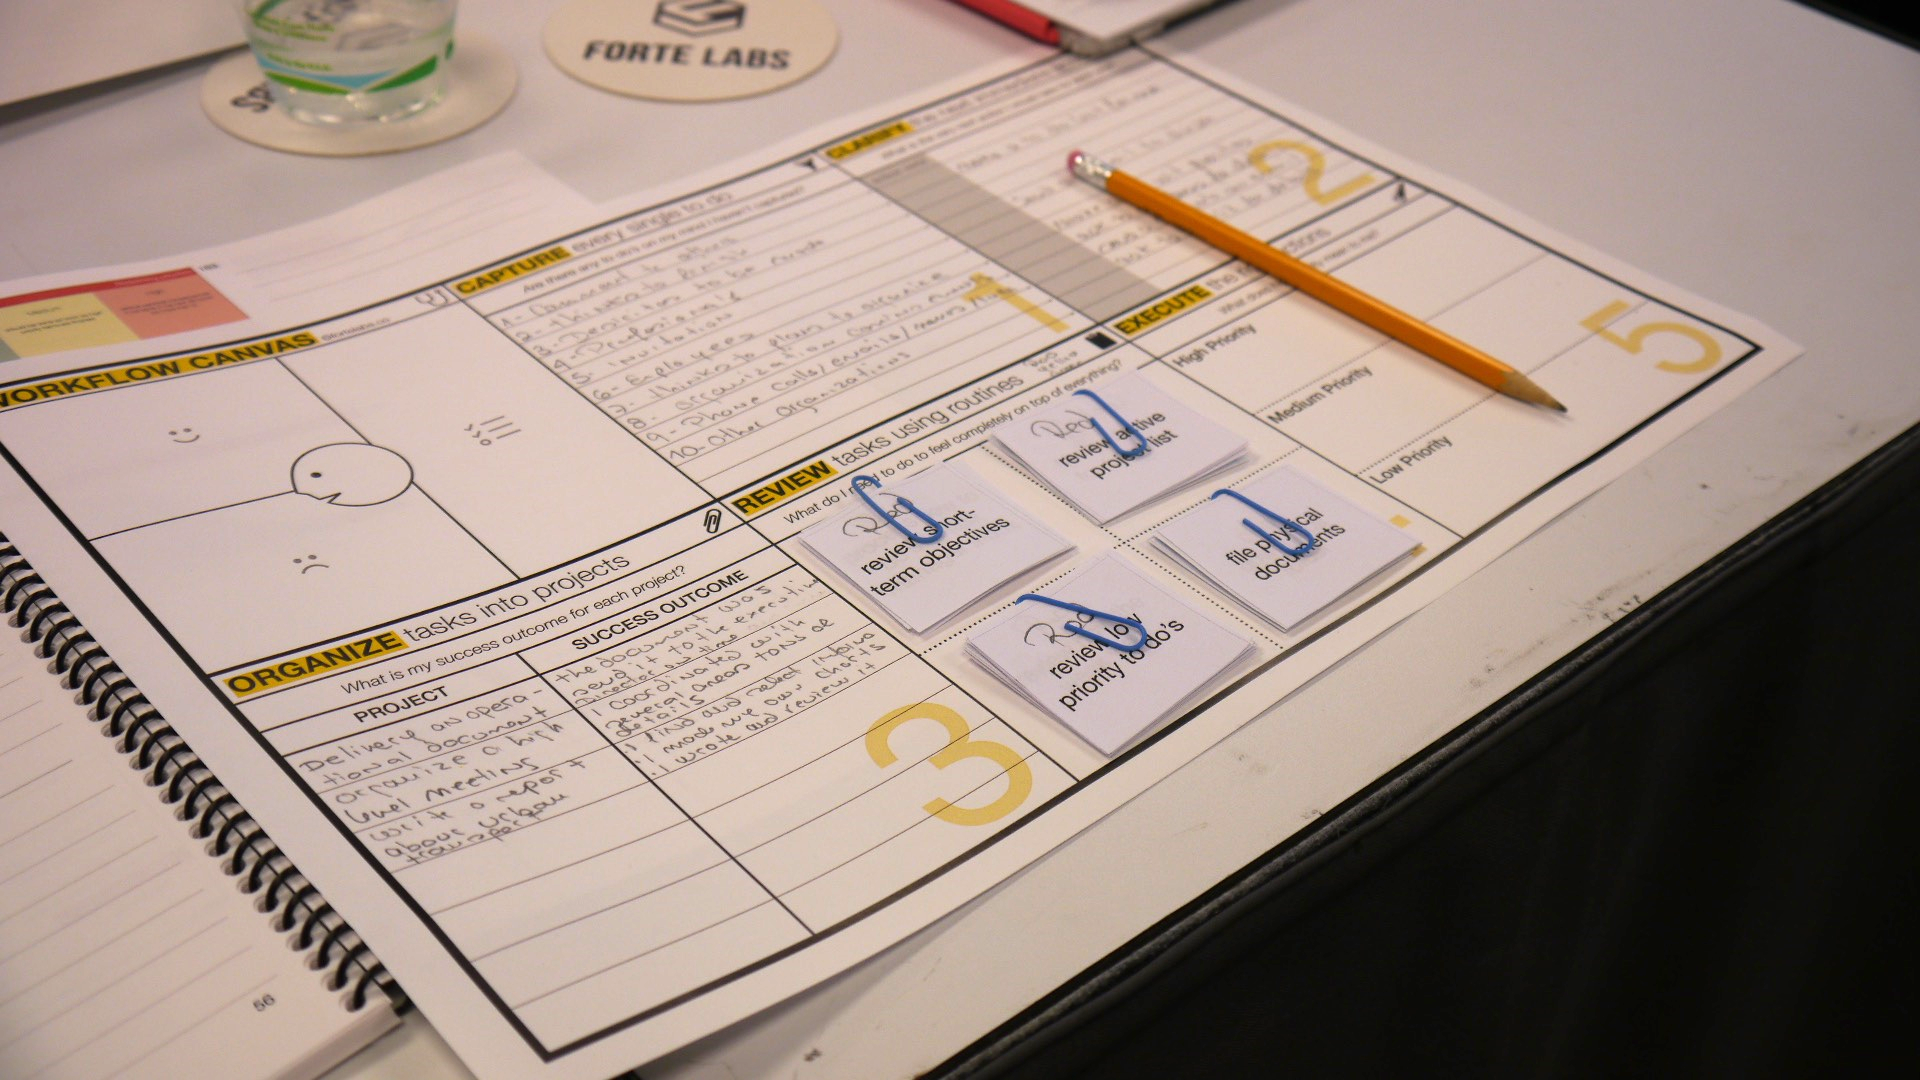 Our custom-designed workflow prototyping materials